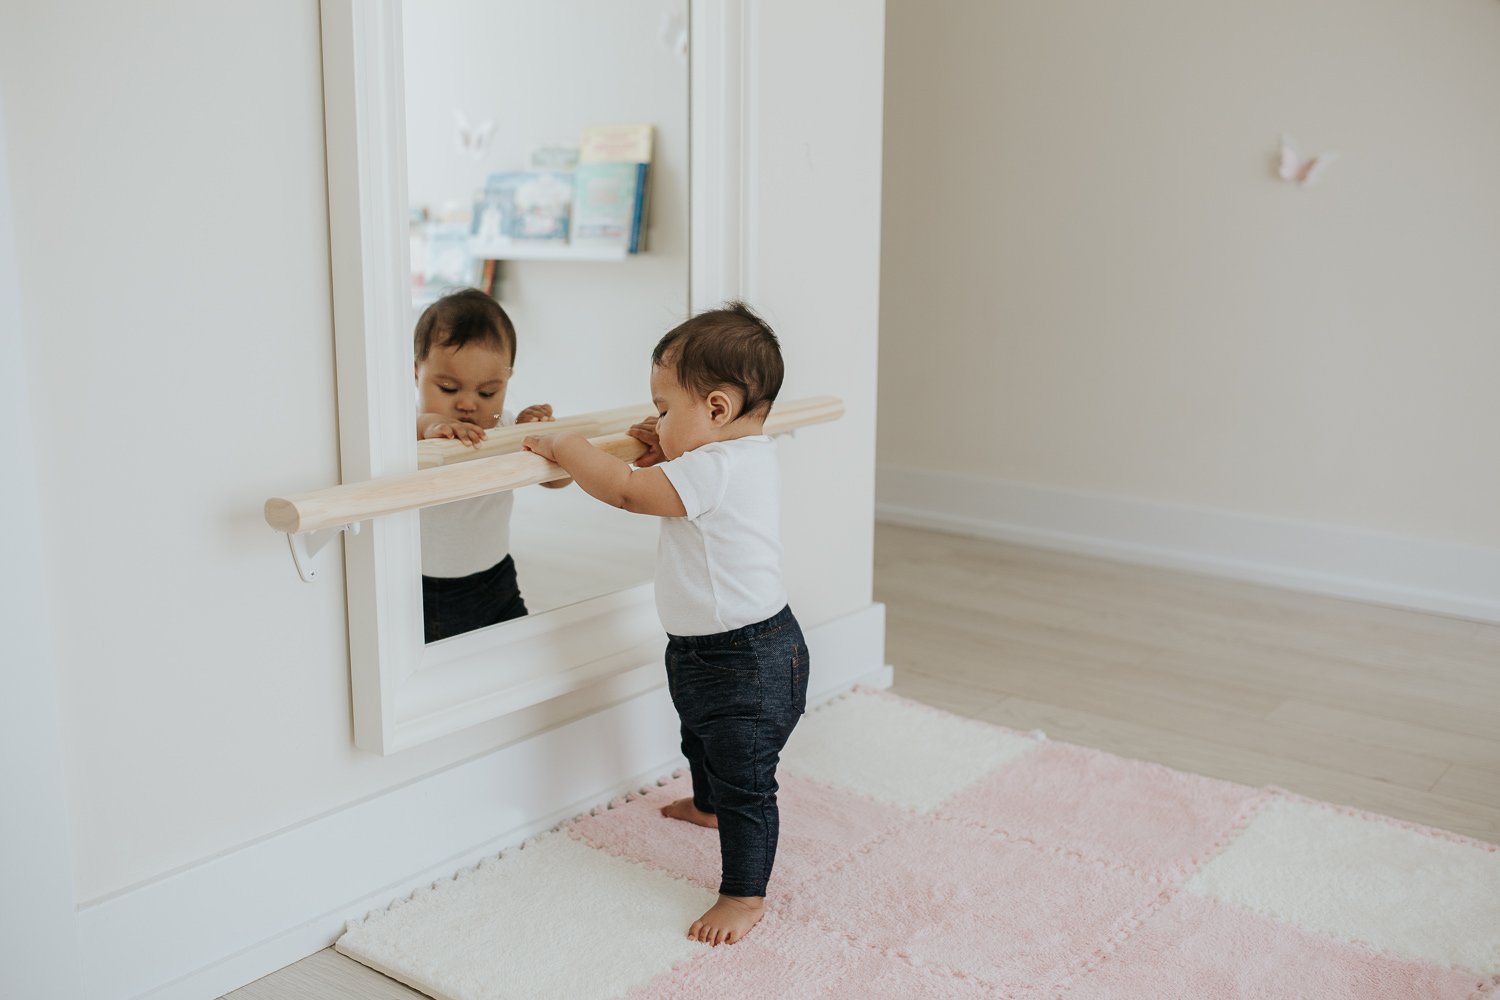 6 month old baby girl standing holding onto bar and looking in mirror - Barrie Lifestyle Photography